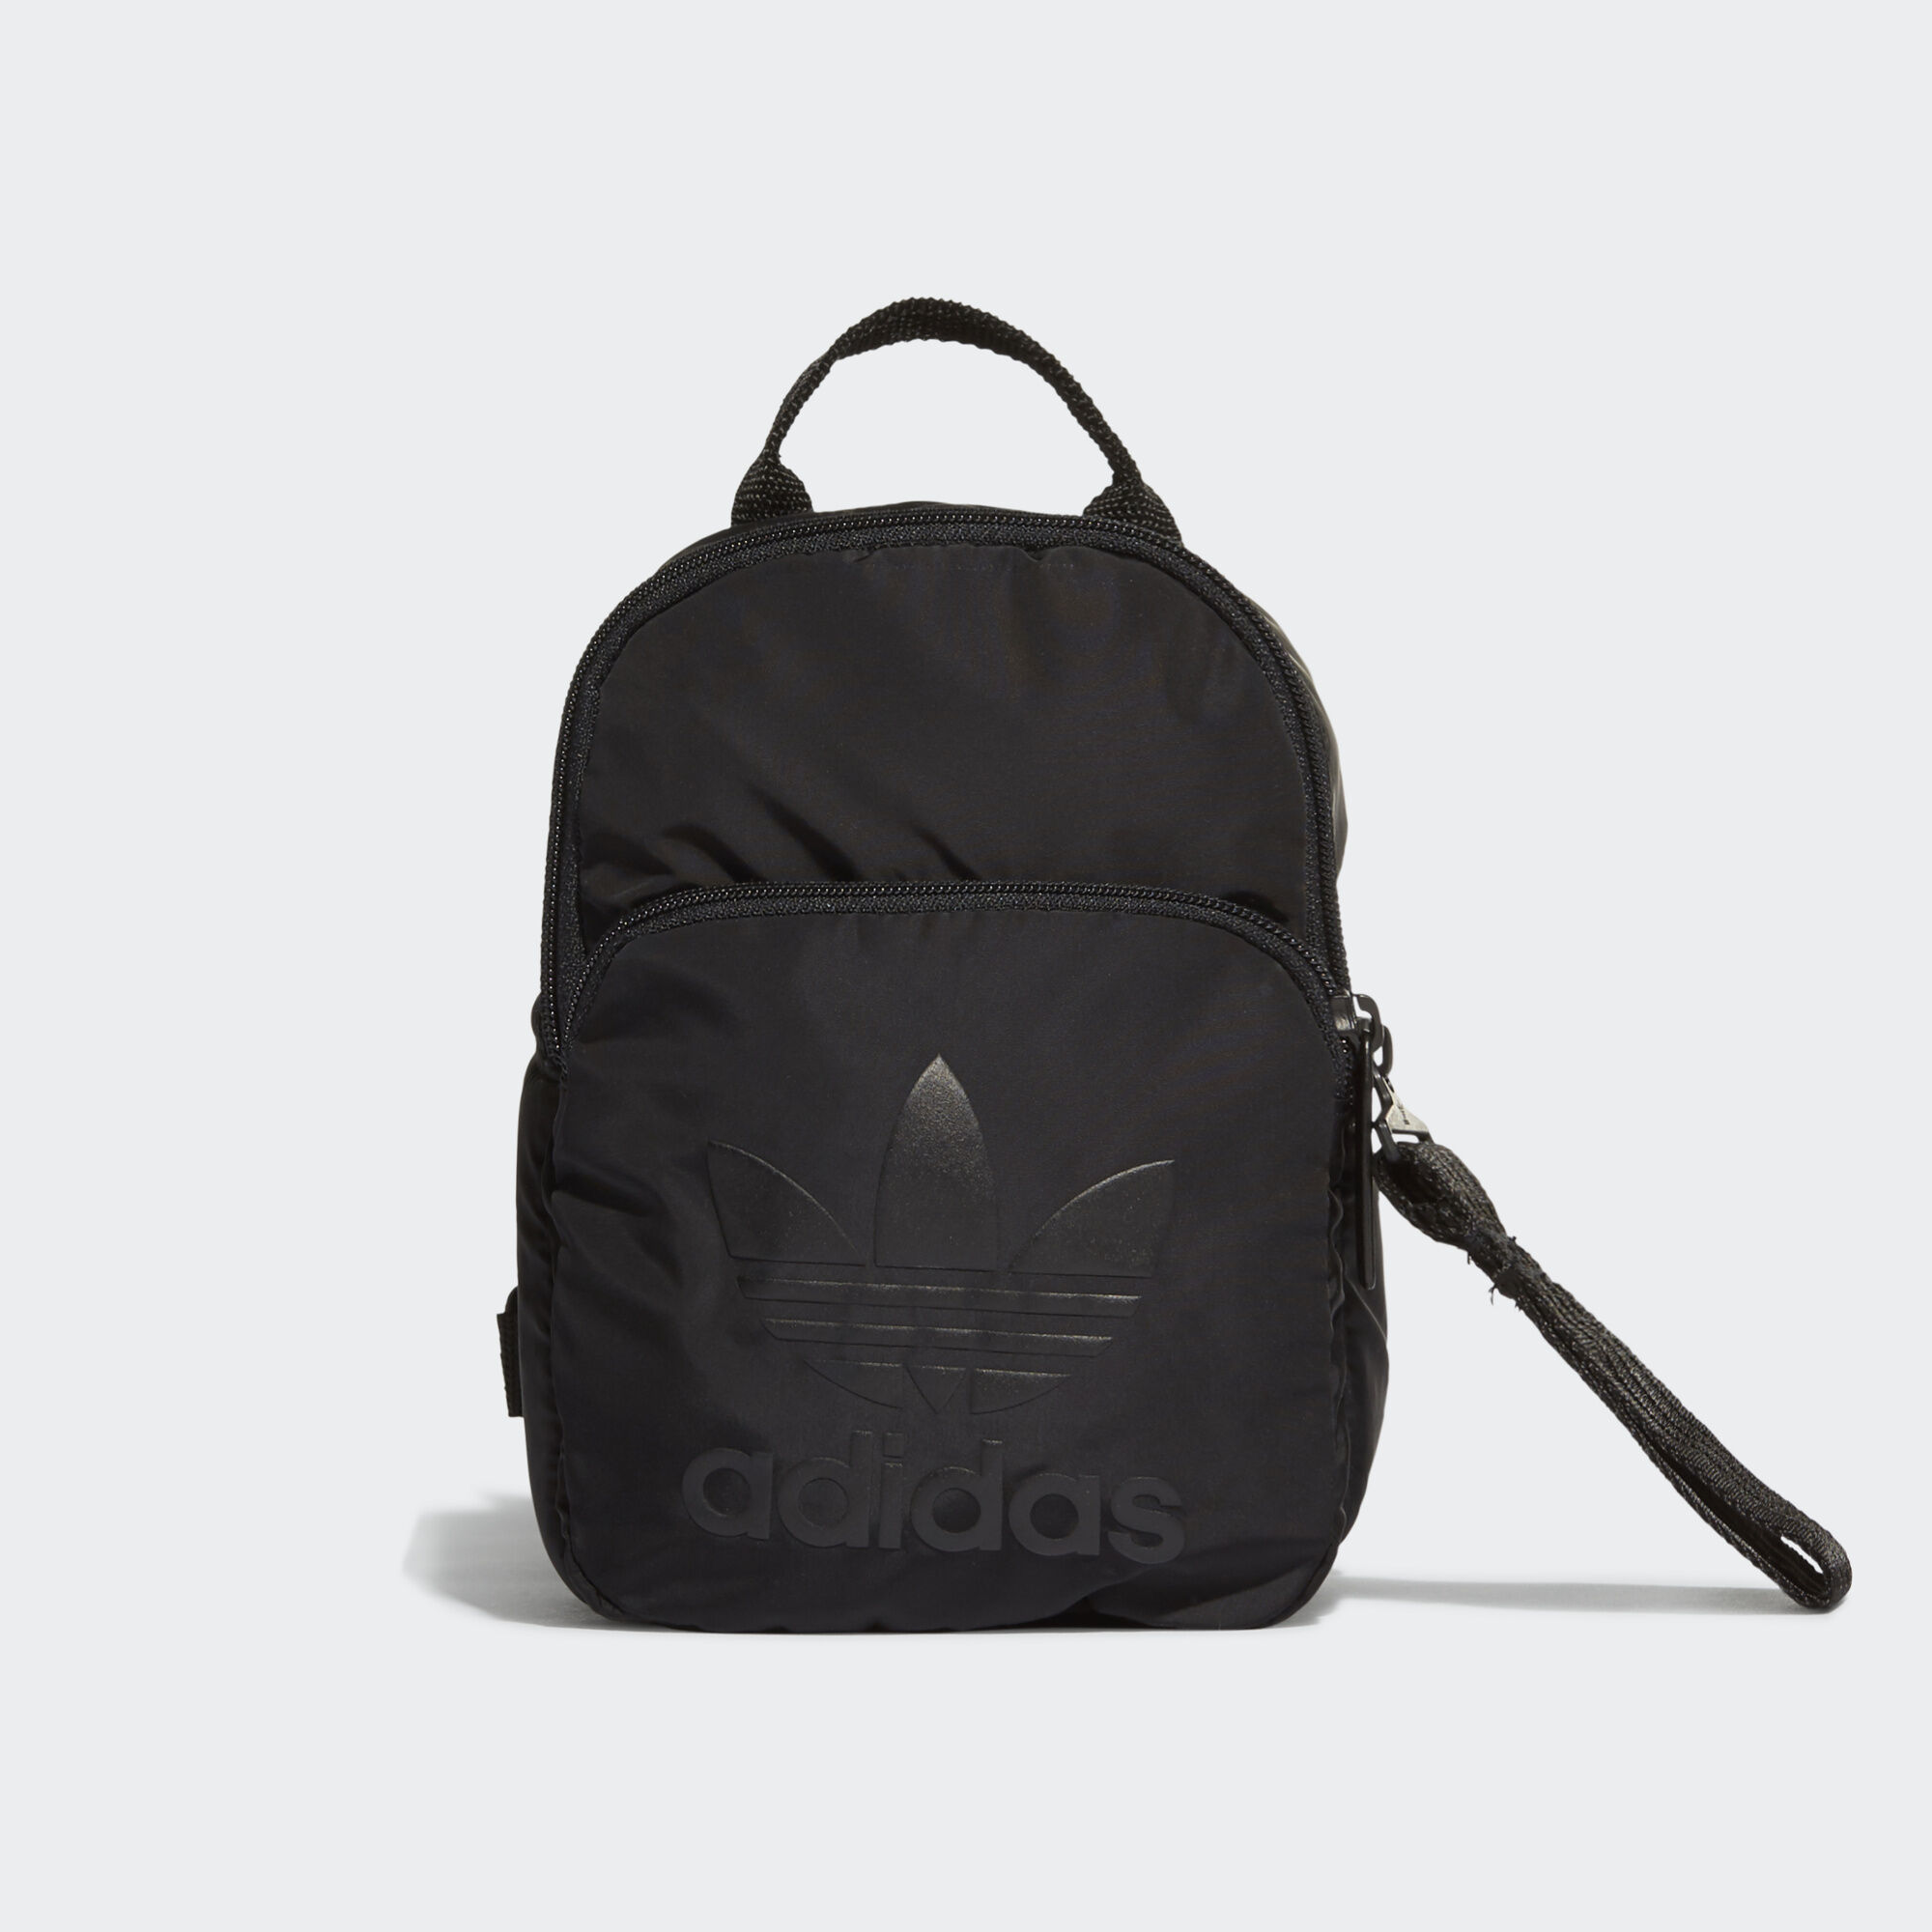 adidas - Classic Mini Backpack Black DV0212. Women Originals 307de2c5f4767